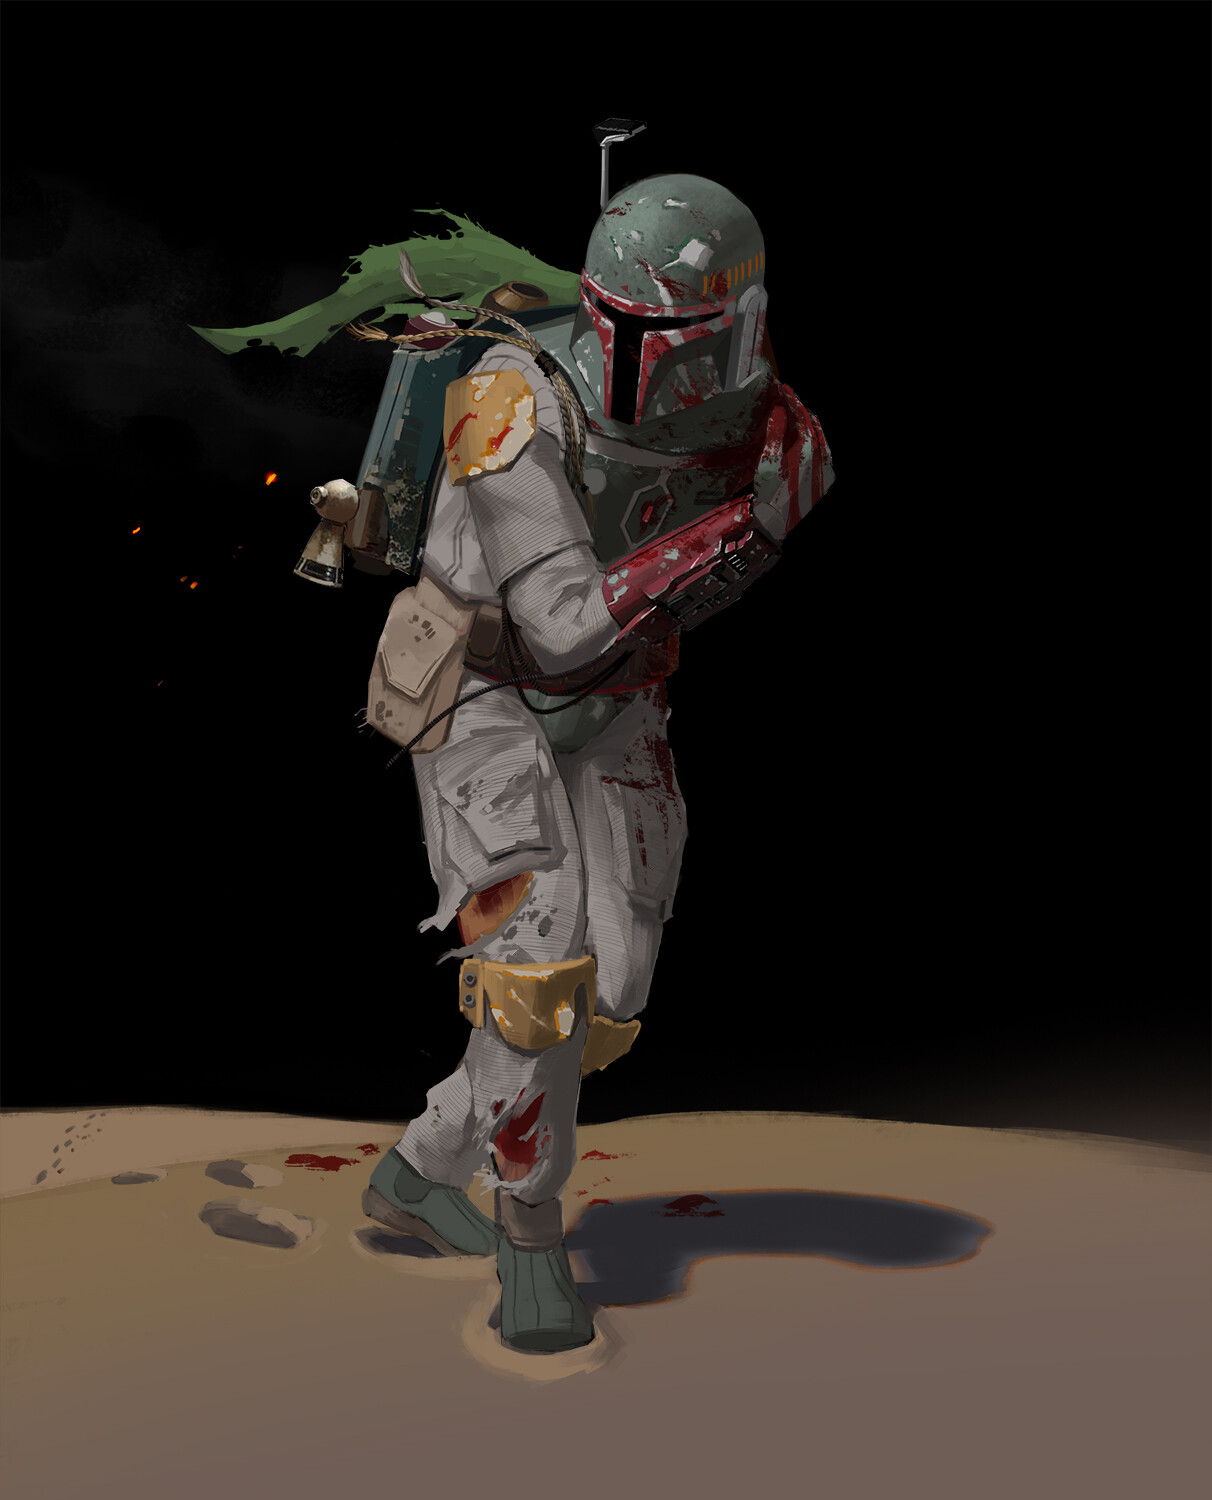 Part 1 - Boba Fett barely escapes the Sarlacc, expending his rocket and losing his left arm.  The Sarlacc was displeased with Boba's attempt to use his flamethrower while inside it.